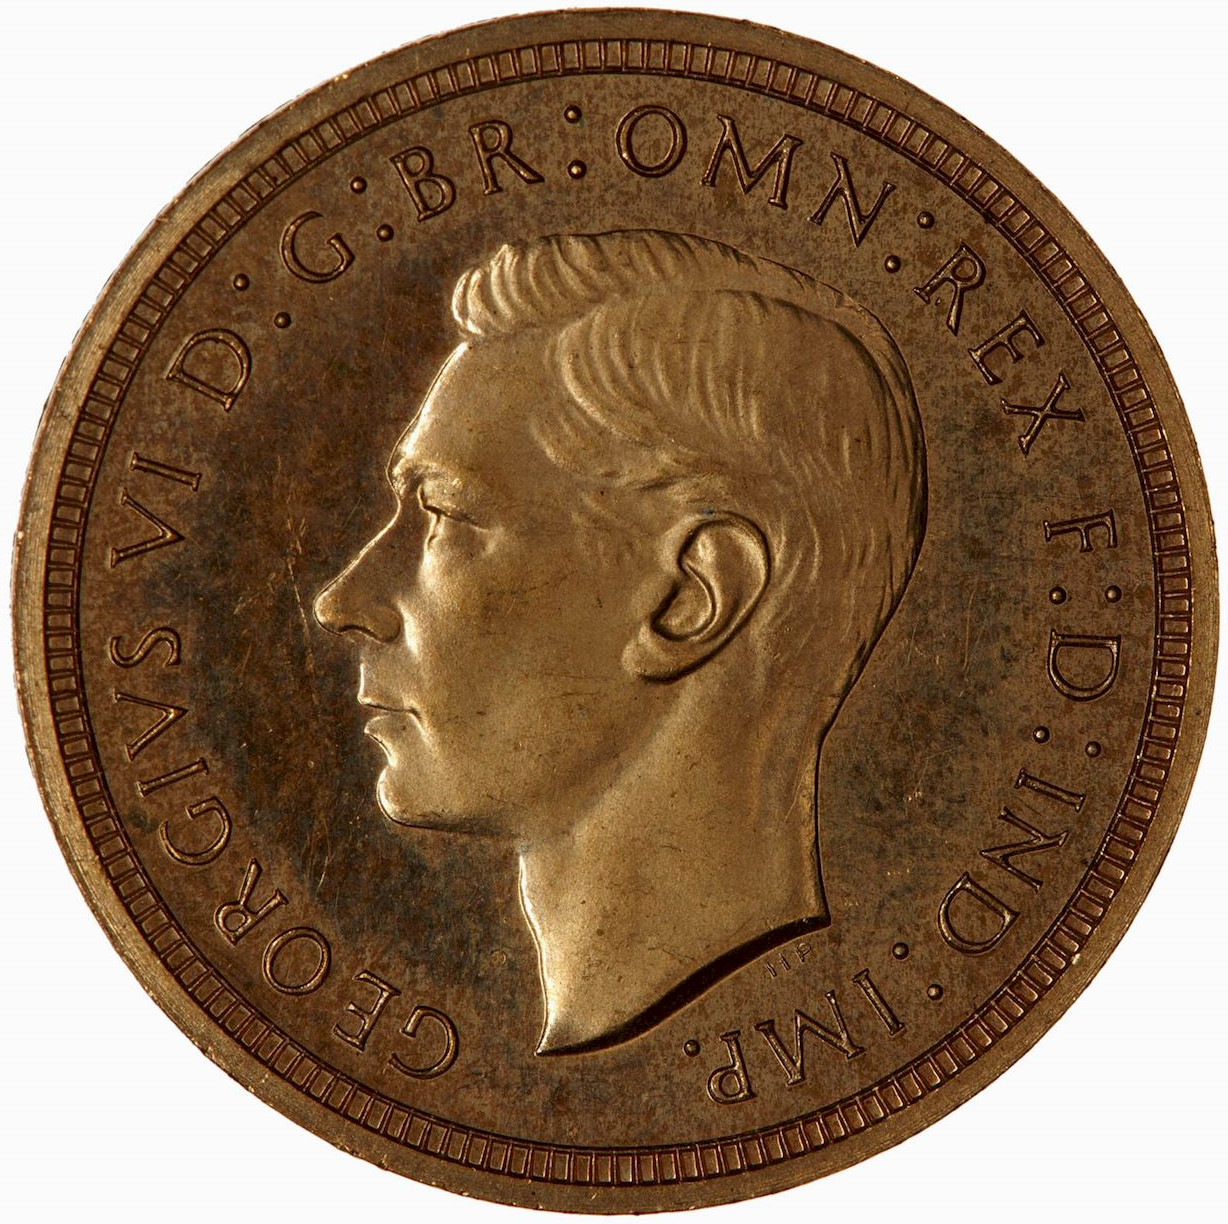 Half Sovereign (Pre-decimal, St George): Photo Proof Coin - Half-Sovereign, George VI, Great Britain, 1937